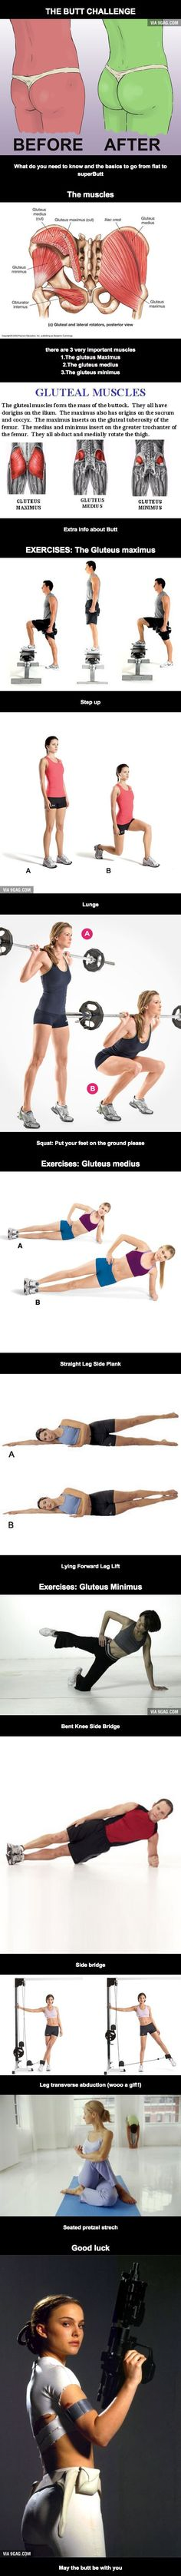 Butt Challenge -- exercises for gluteus maximus, gluteus medius, and gluteus minimus